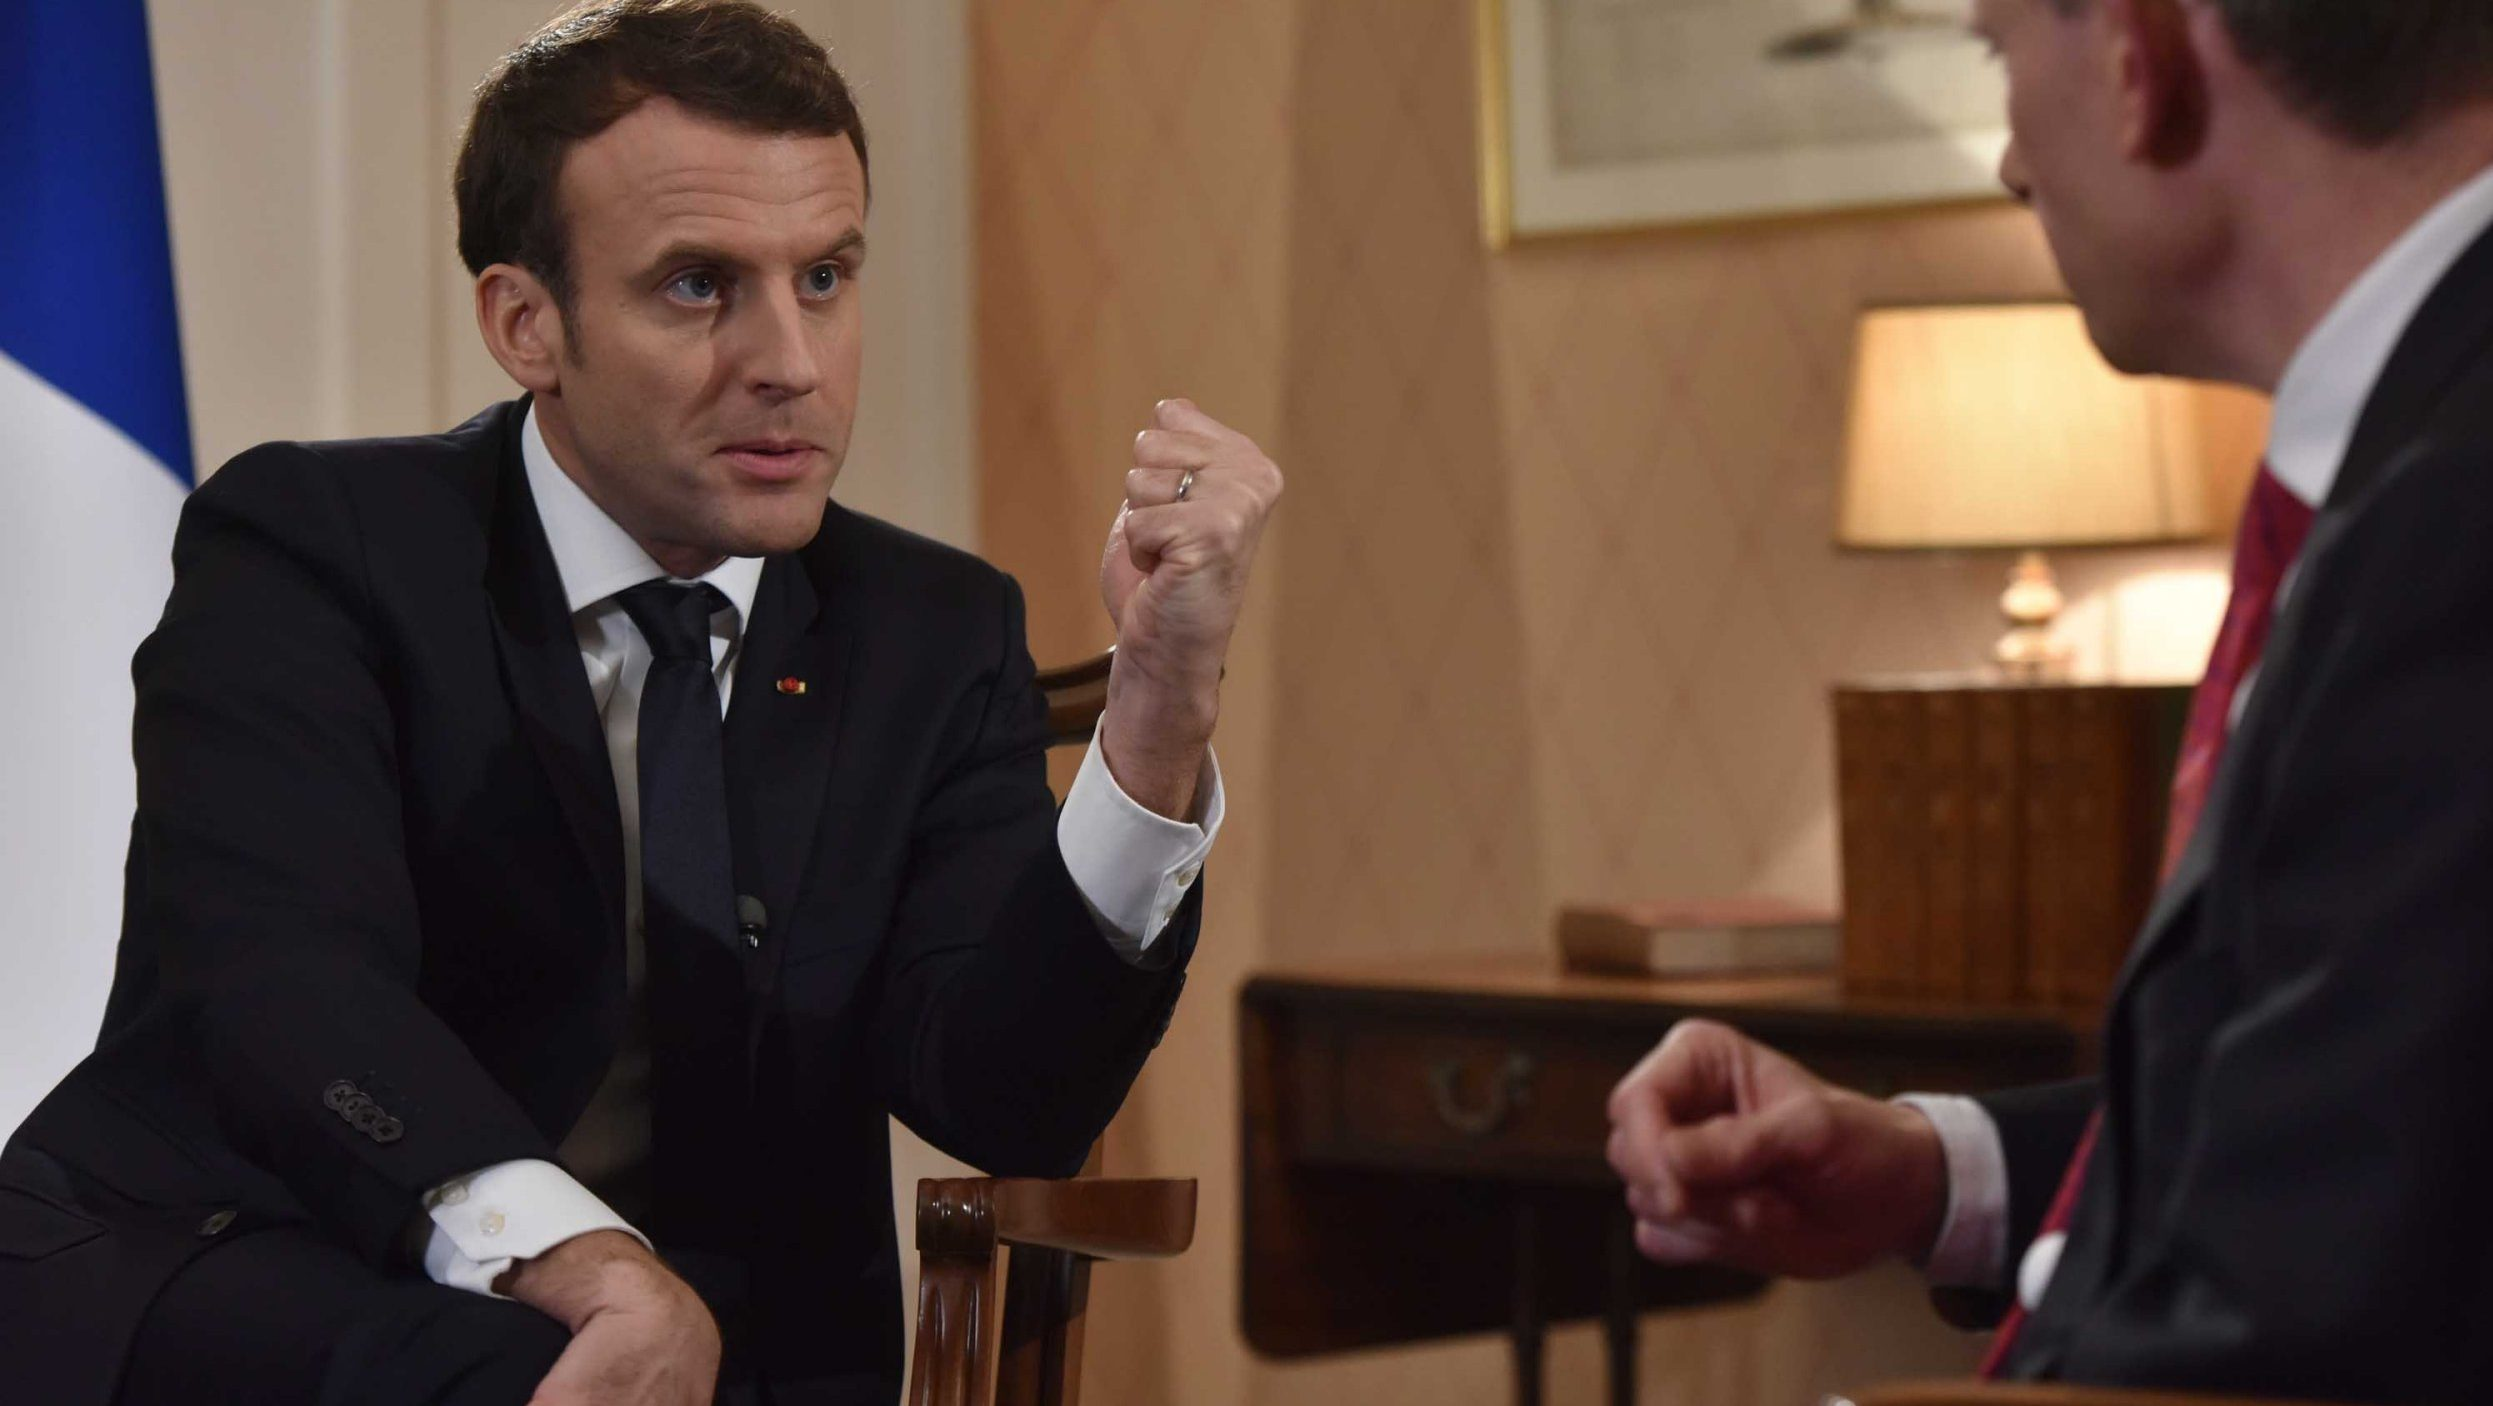 France would 'probably' have voted to leave the EU says Emmanuel Macron